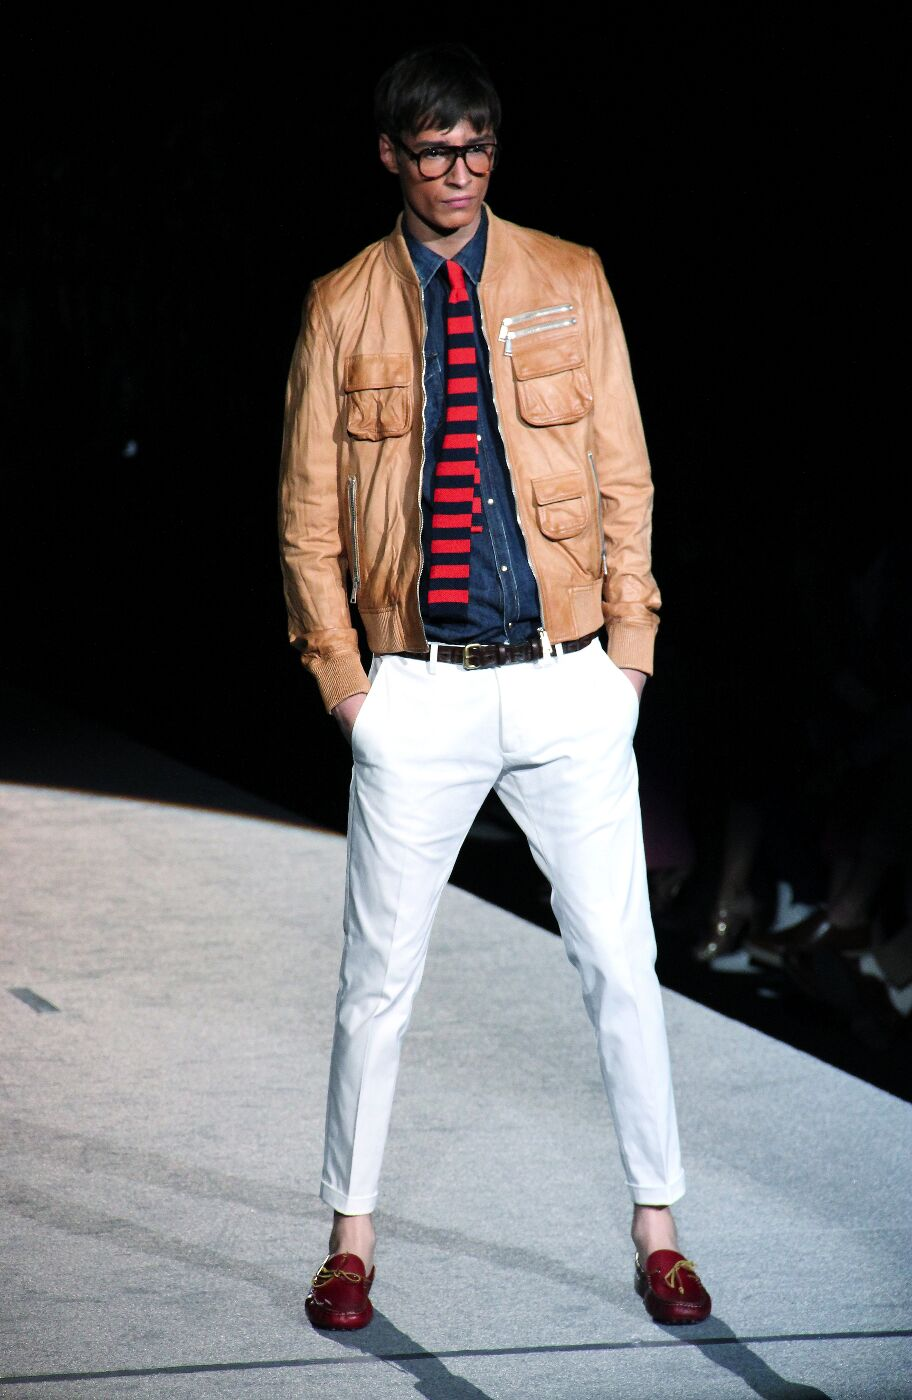 dsquared2-spring-summer-2012-men-collection-milano-fashion-week-2012-dsquared2-primavera-estate-fashion-show-catwalk